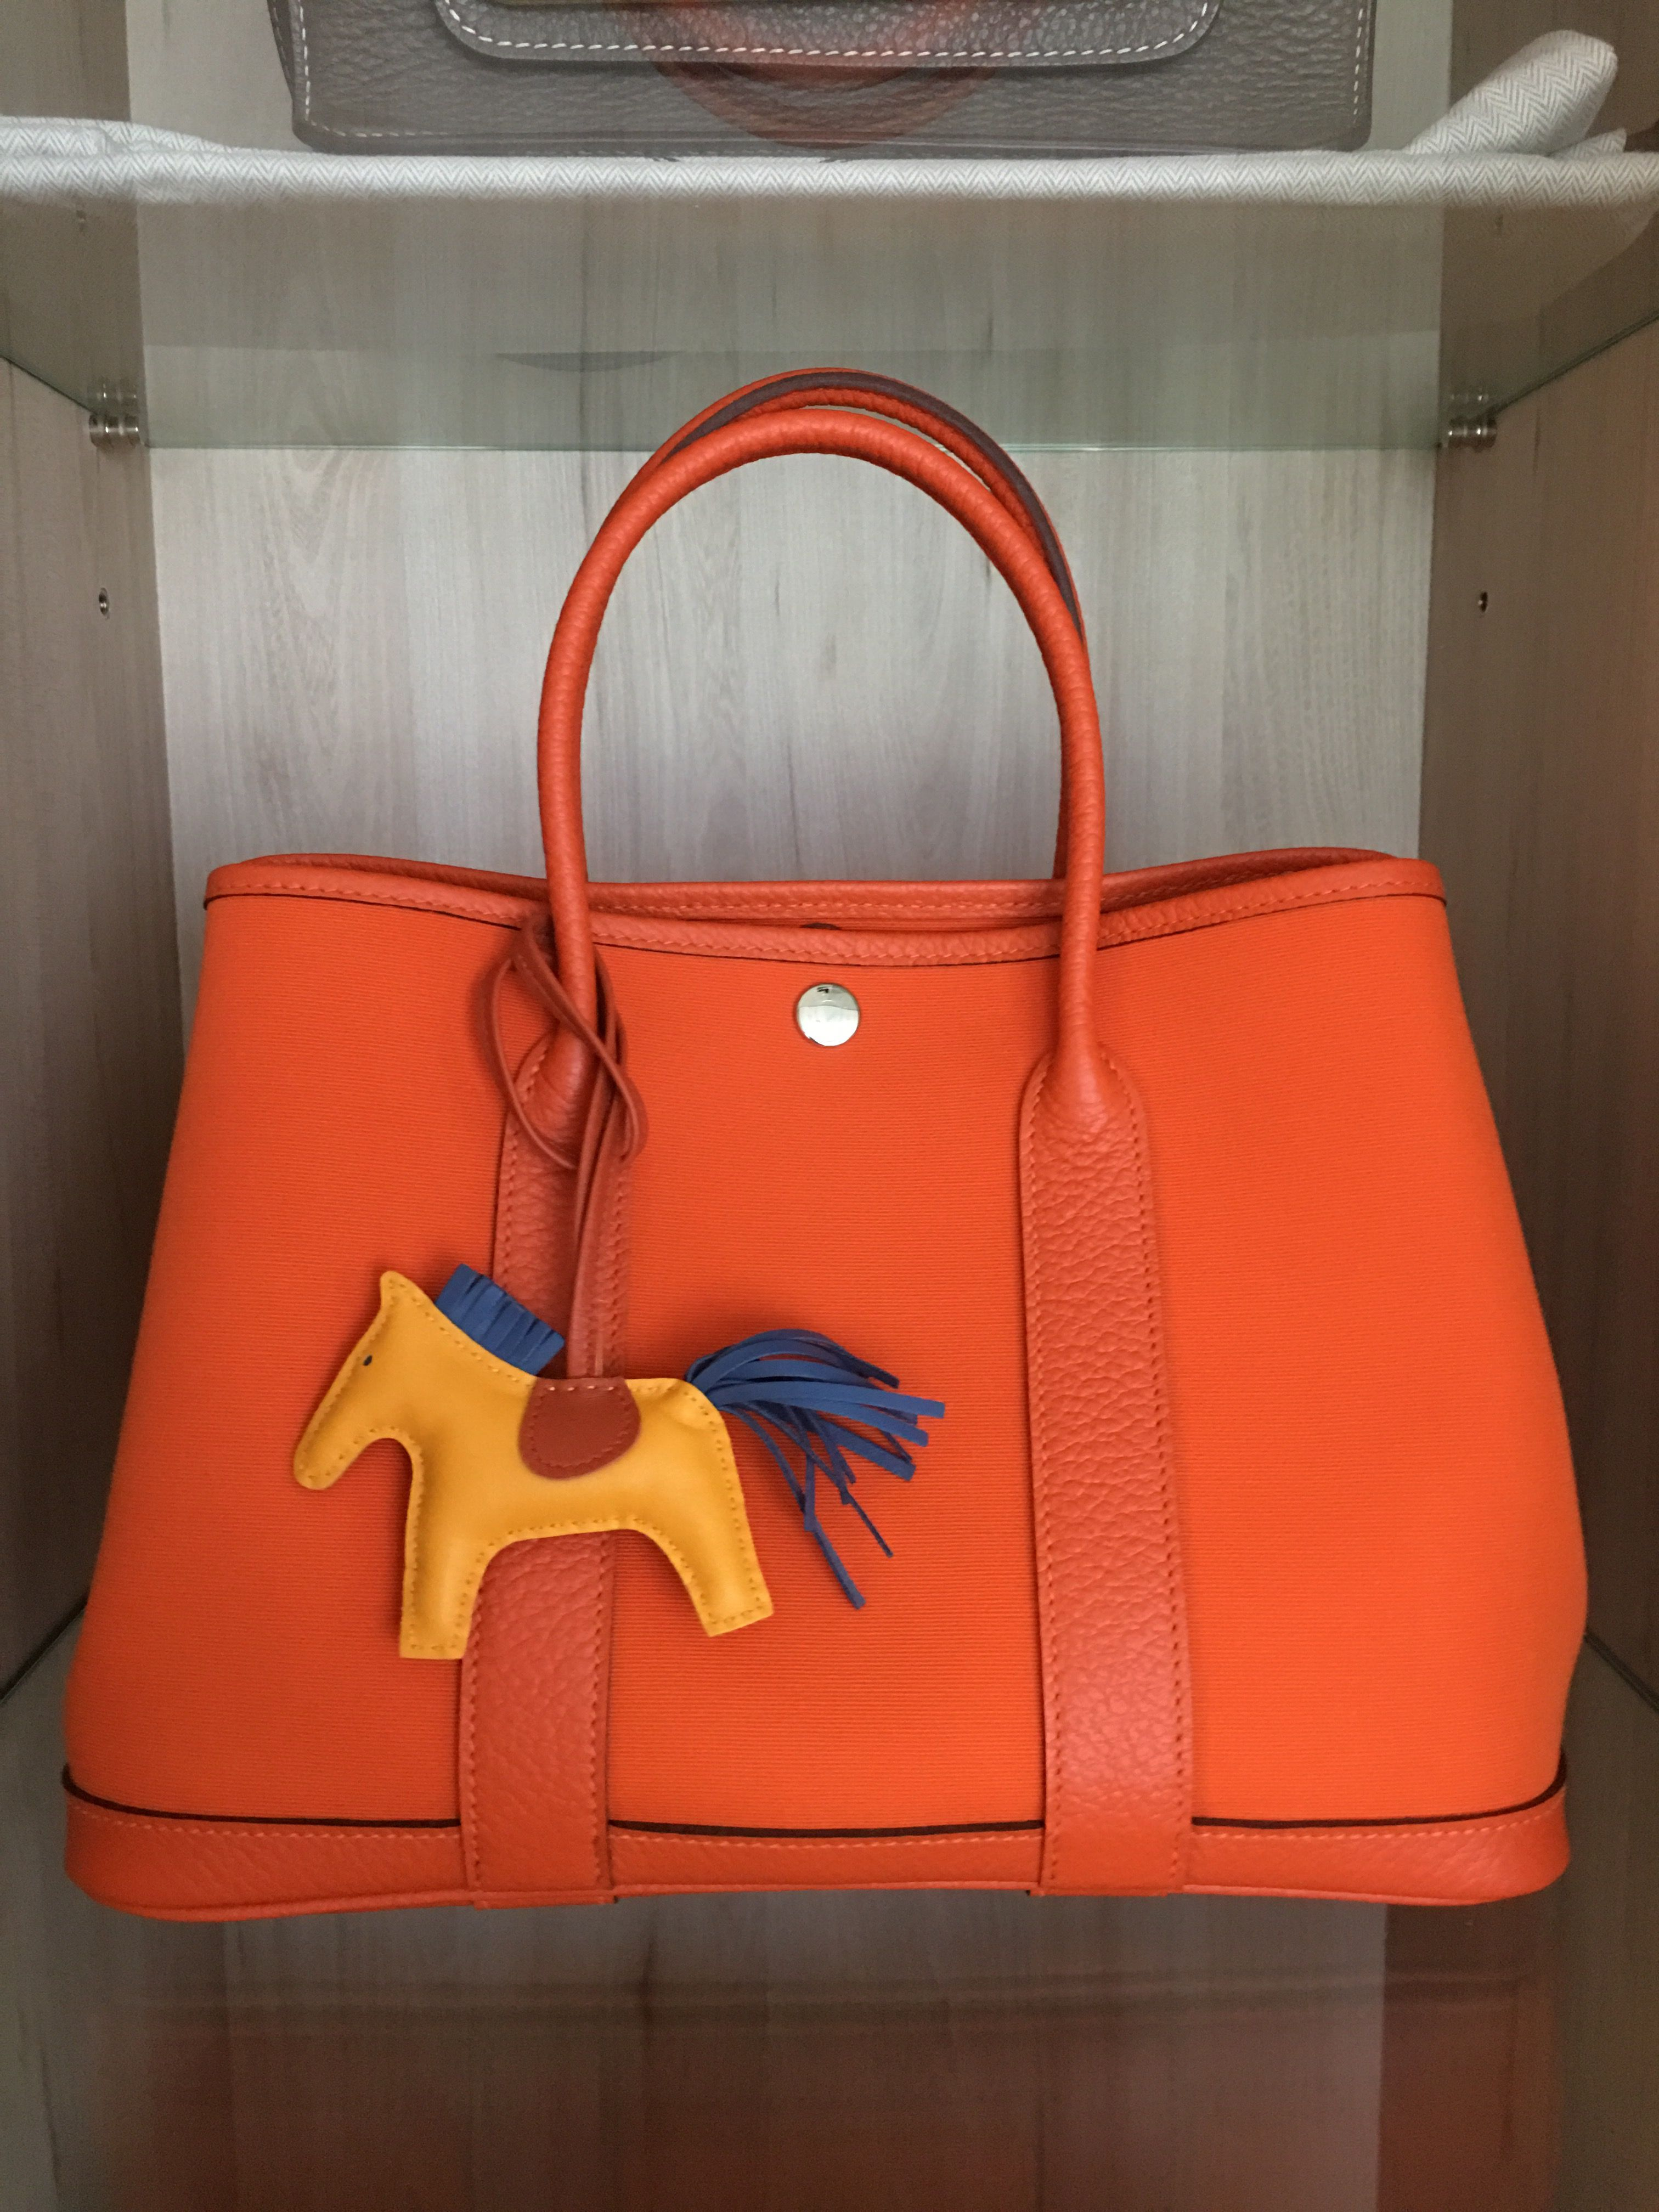 Model  Hermes Garden Party 30 Year  2016 Color  Orange Leather  Canvas  39f5cf6239